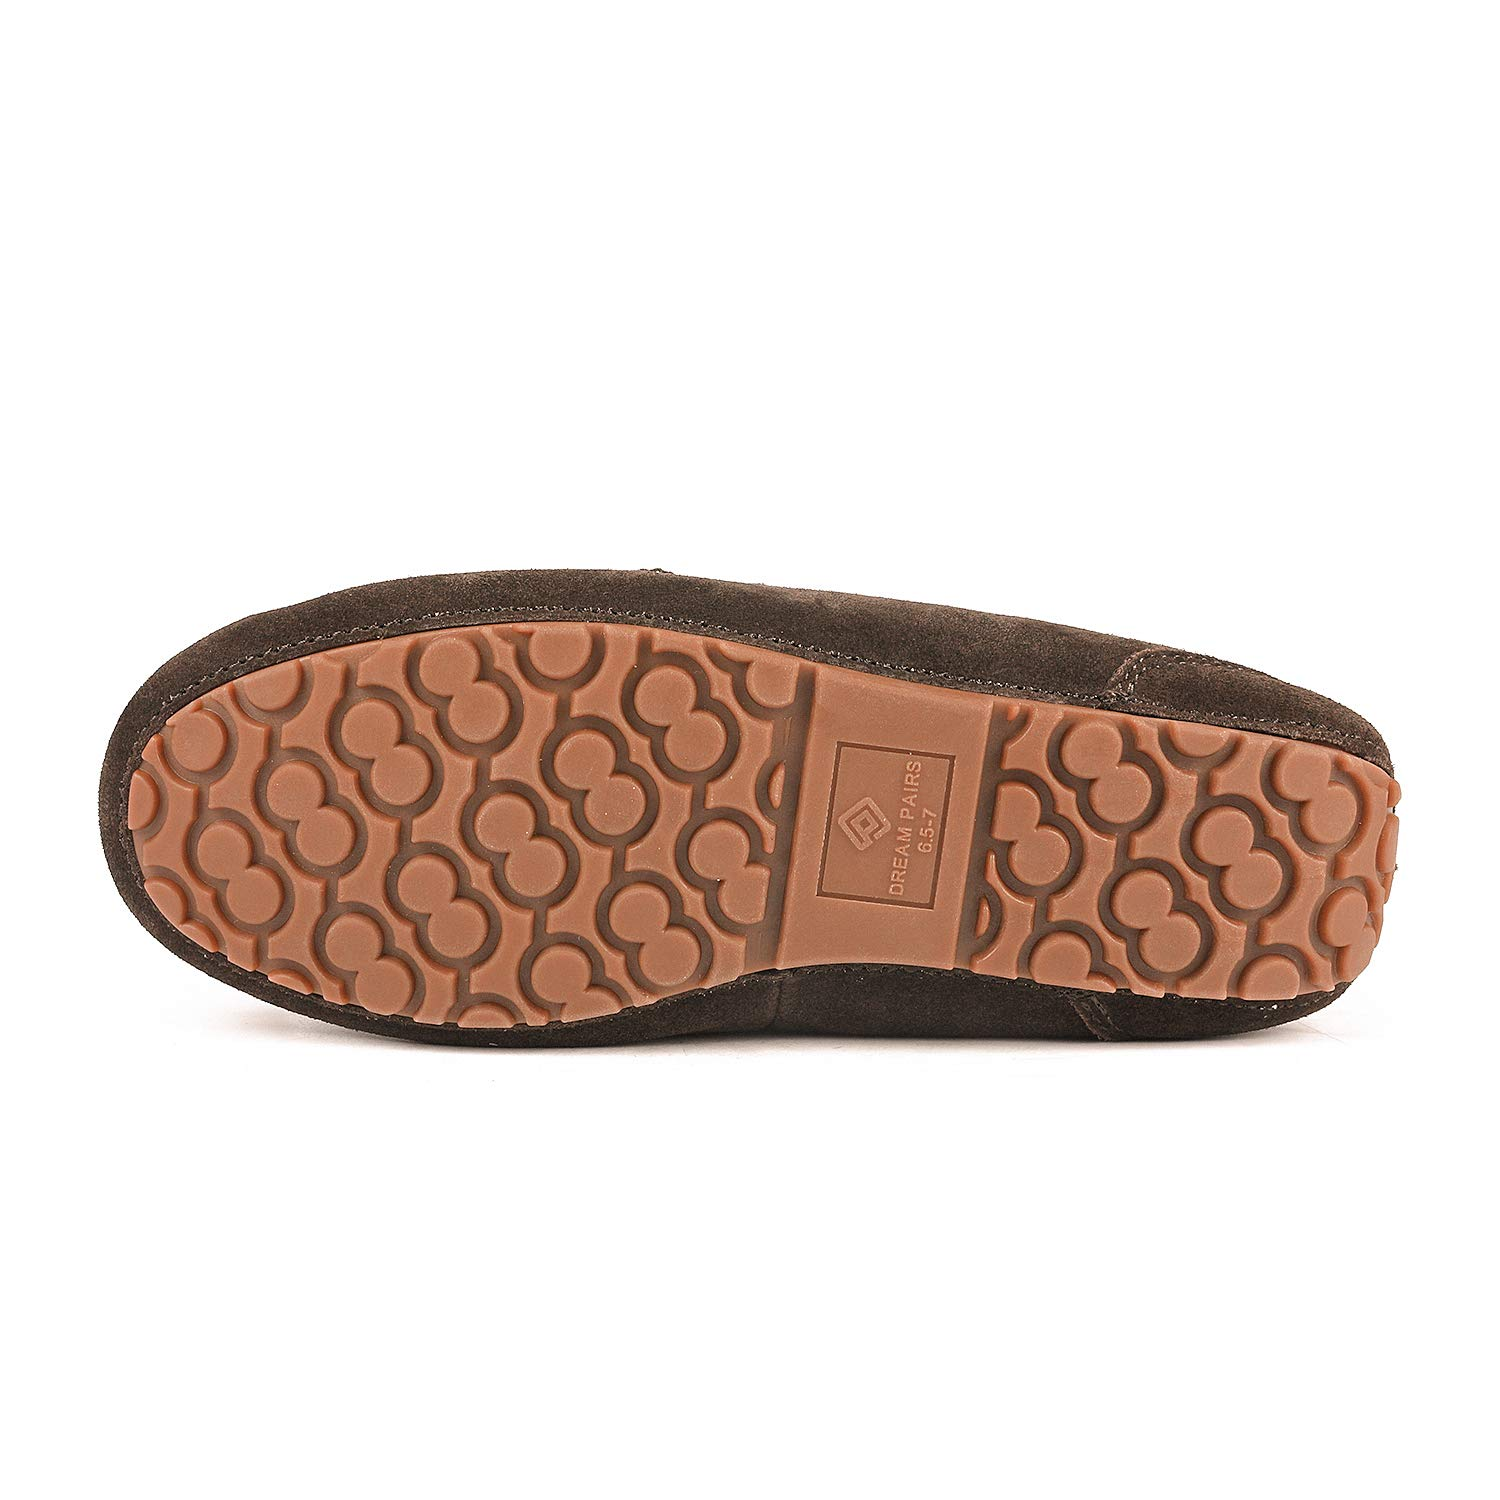 DREAM PAIRS Womens Auzy Winter Moccasins Slippers